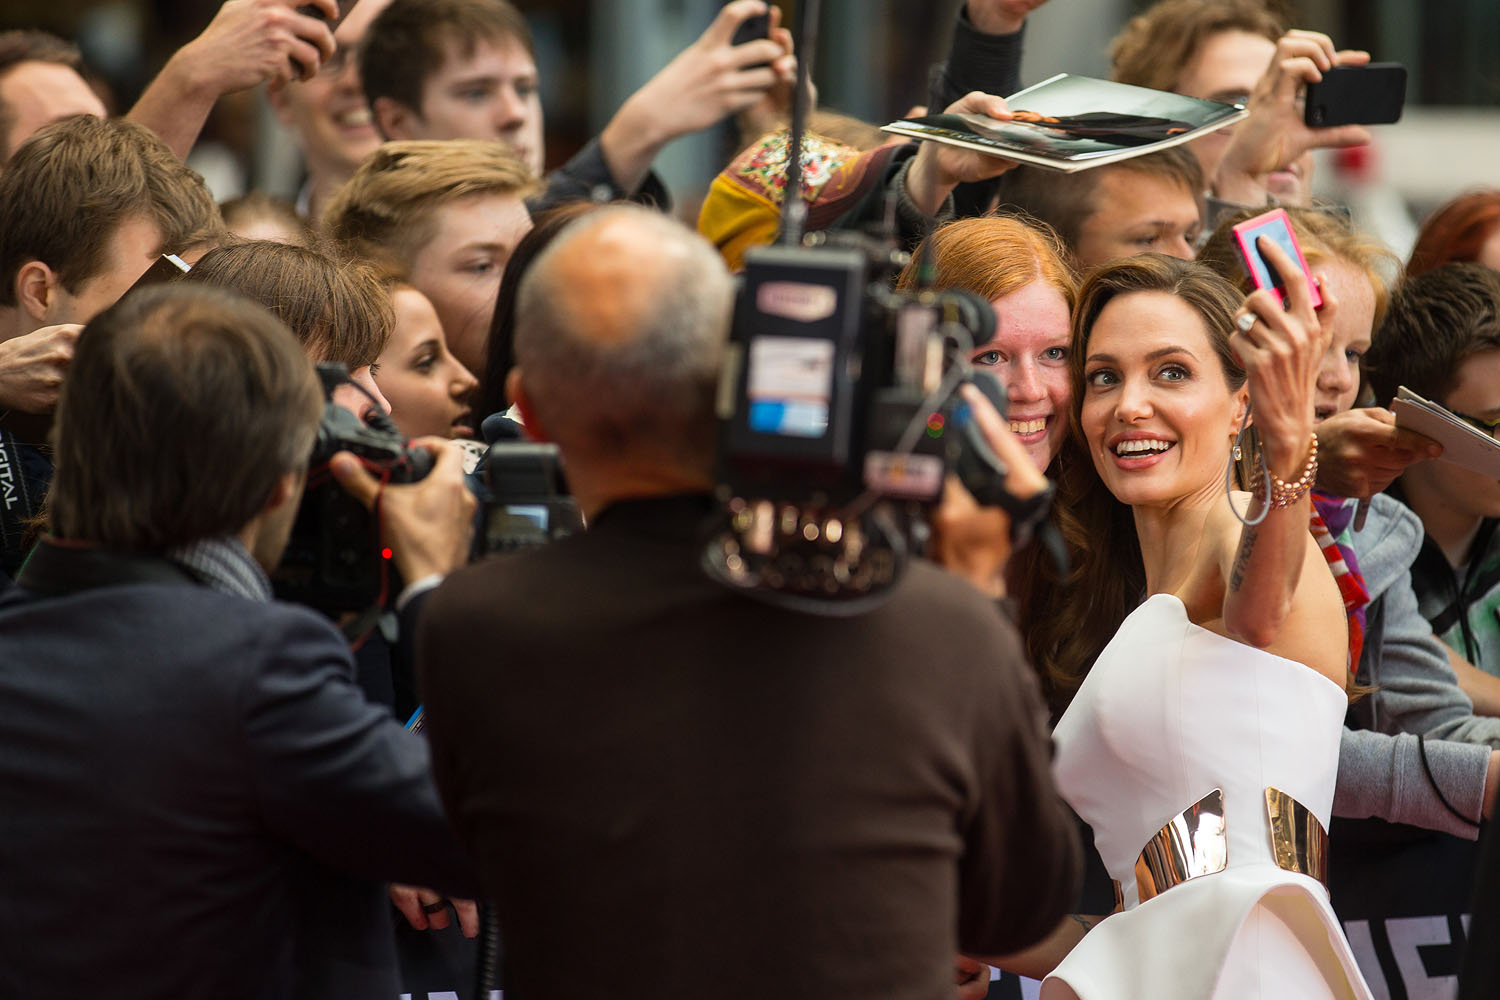 June 4, 2013. US actress Angelina Jolie poses for photos with fans as she arrives for the German premiere of the film  World War Z  at the Cinestar movie theater in Berlin.